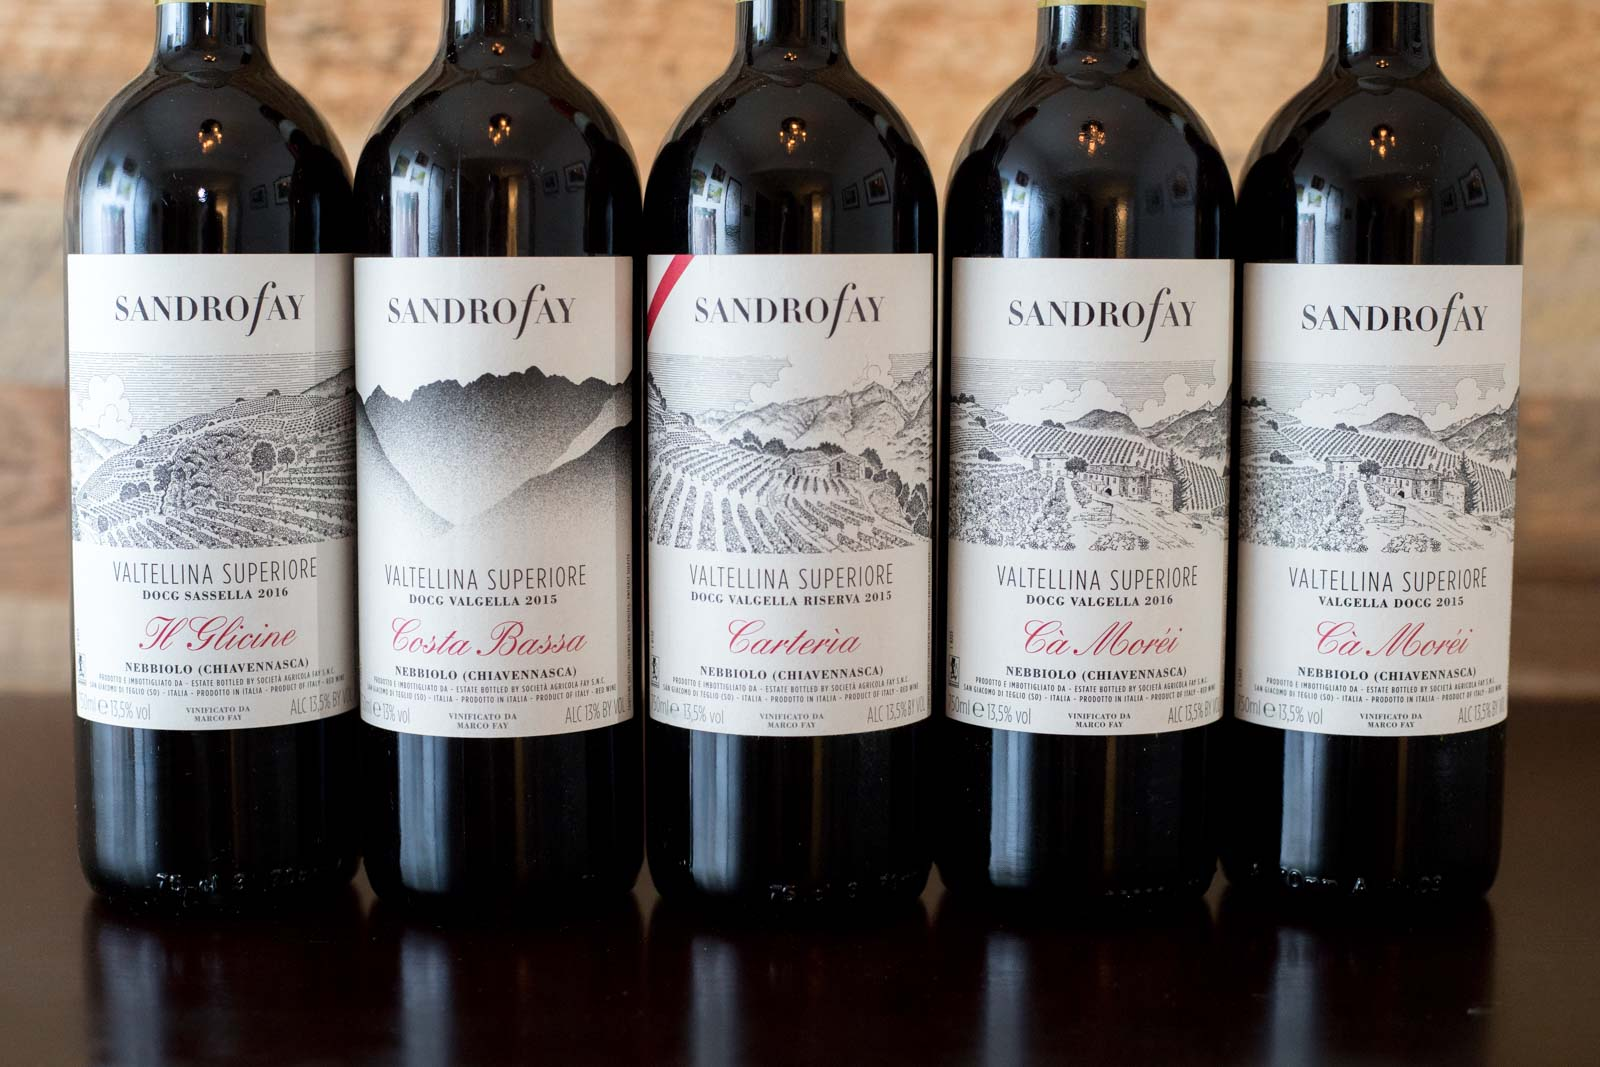 The Valtellina Superiore wines of Sandro Fay. ©Kevin Day/Opening a Bottle